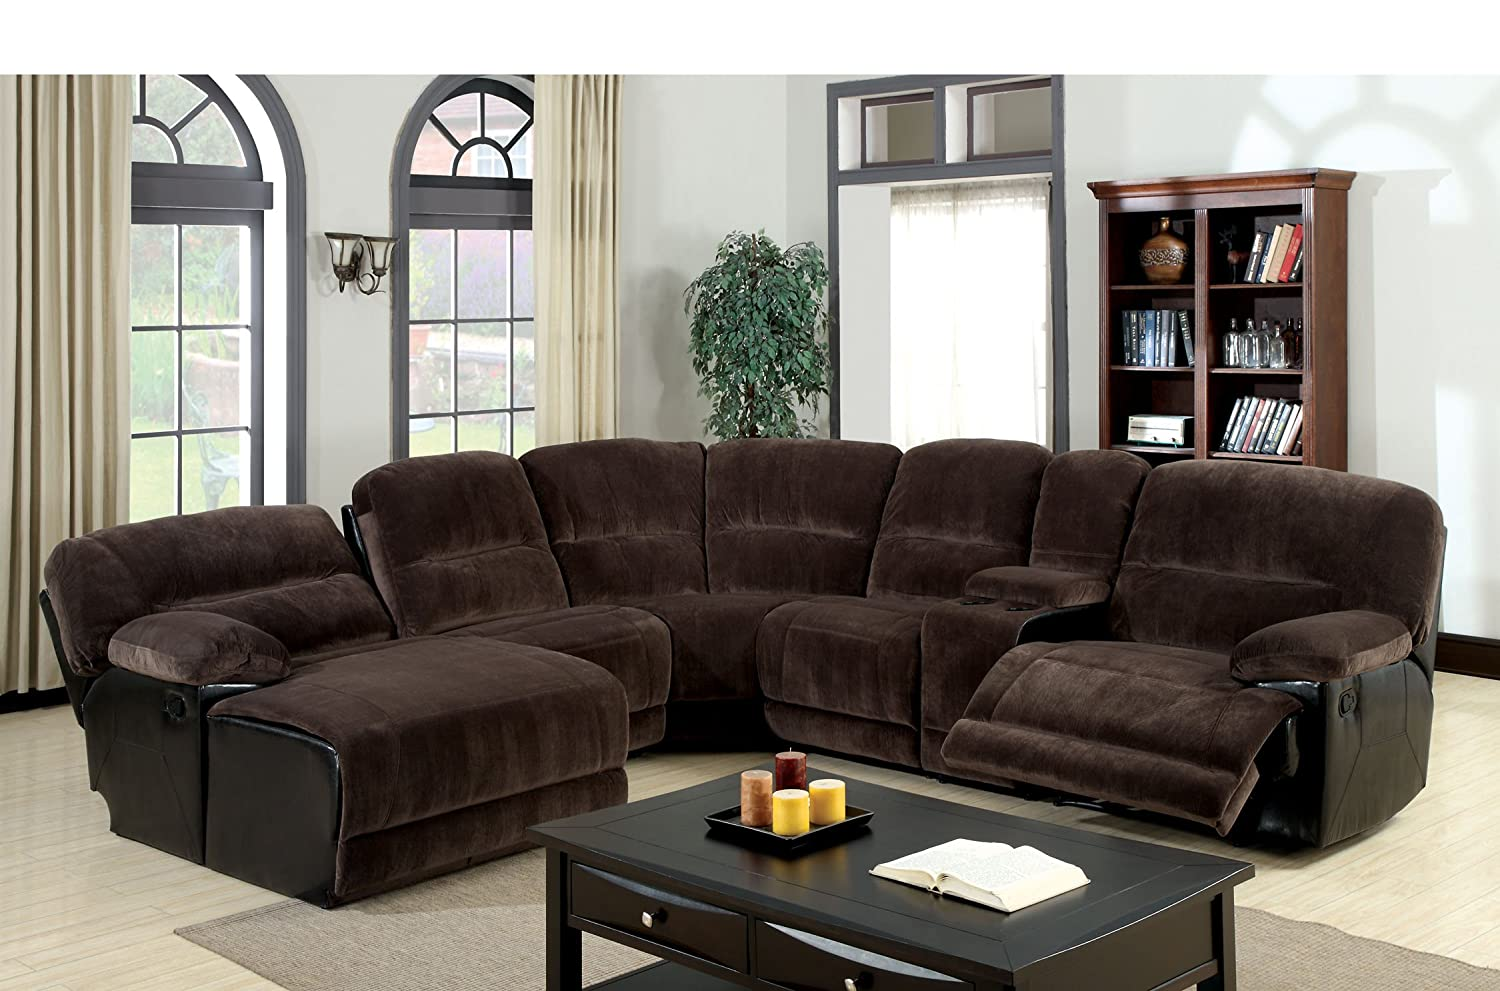 Amazon.com Furniture of America Ladden Elephant Skin Microfiber Sectional Sofa with 2 Recliners Dark Brown Kitchen u0026 Dining & Amazon.com: Furniture of America Ladden Elephant Skin Microfiber ... islam-shia.org